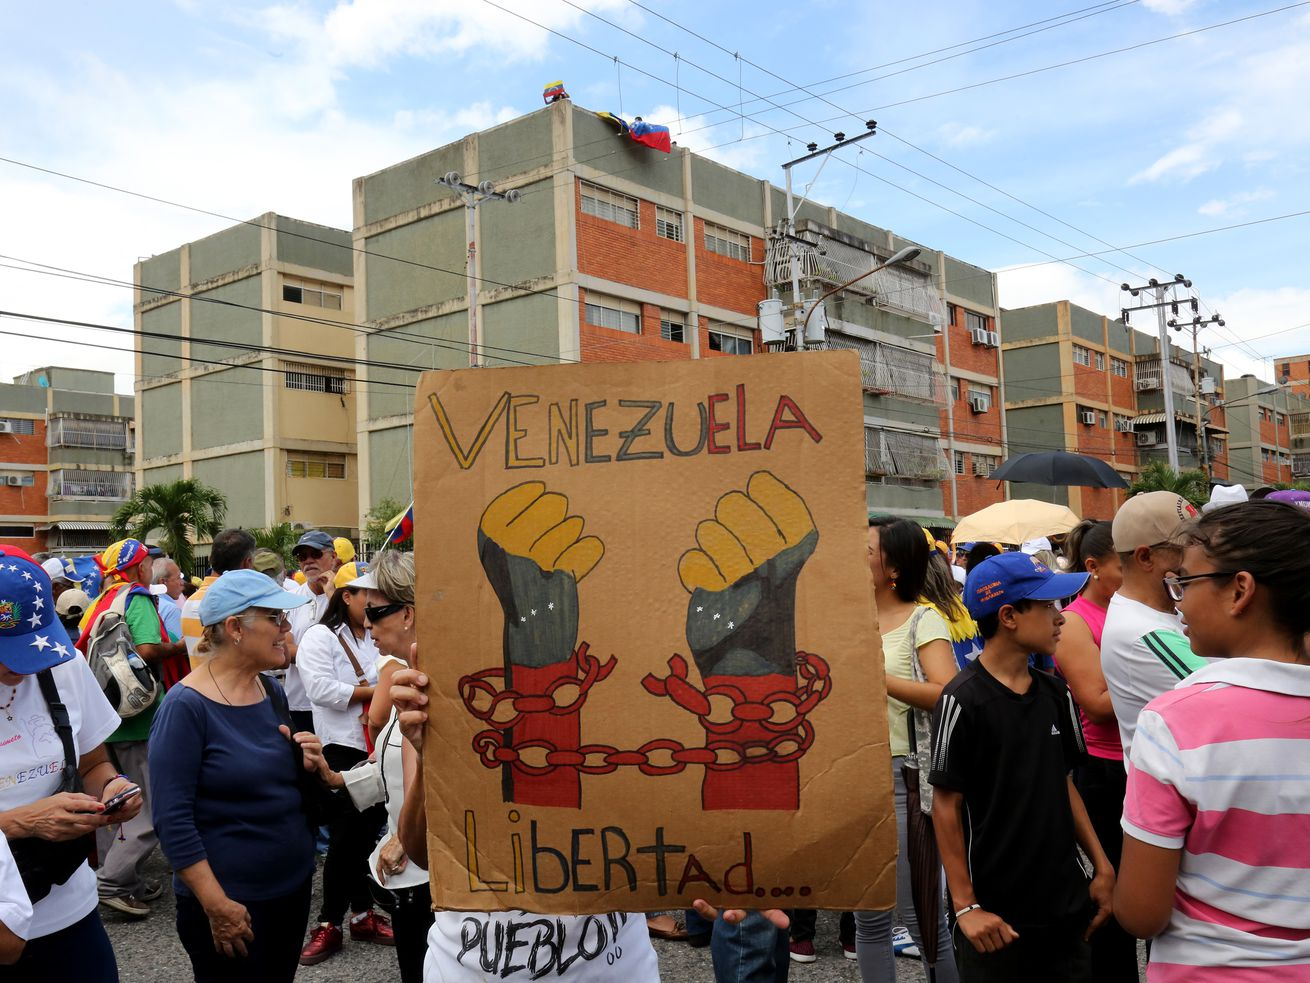 A rally for Venezuelan opposition leader Juan Guaidó.